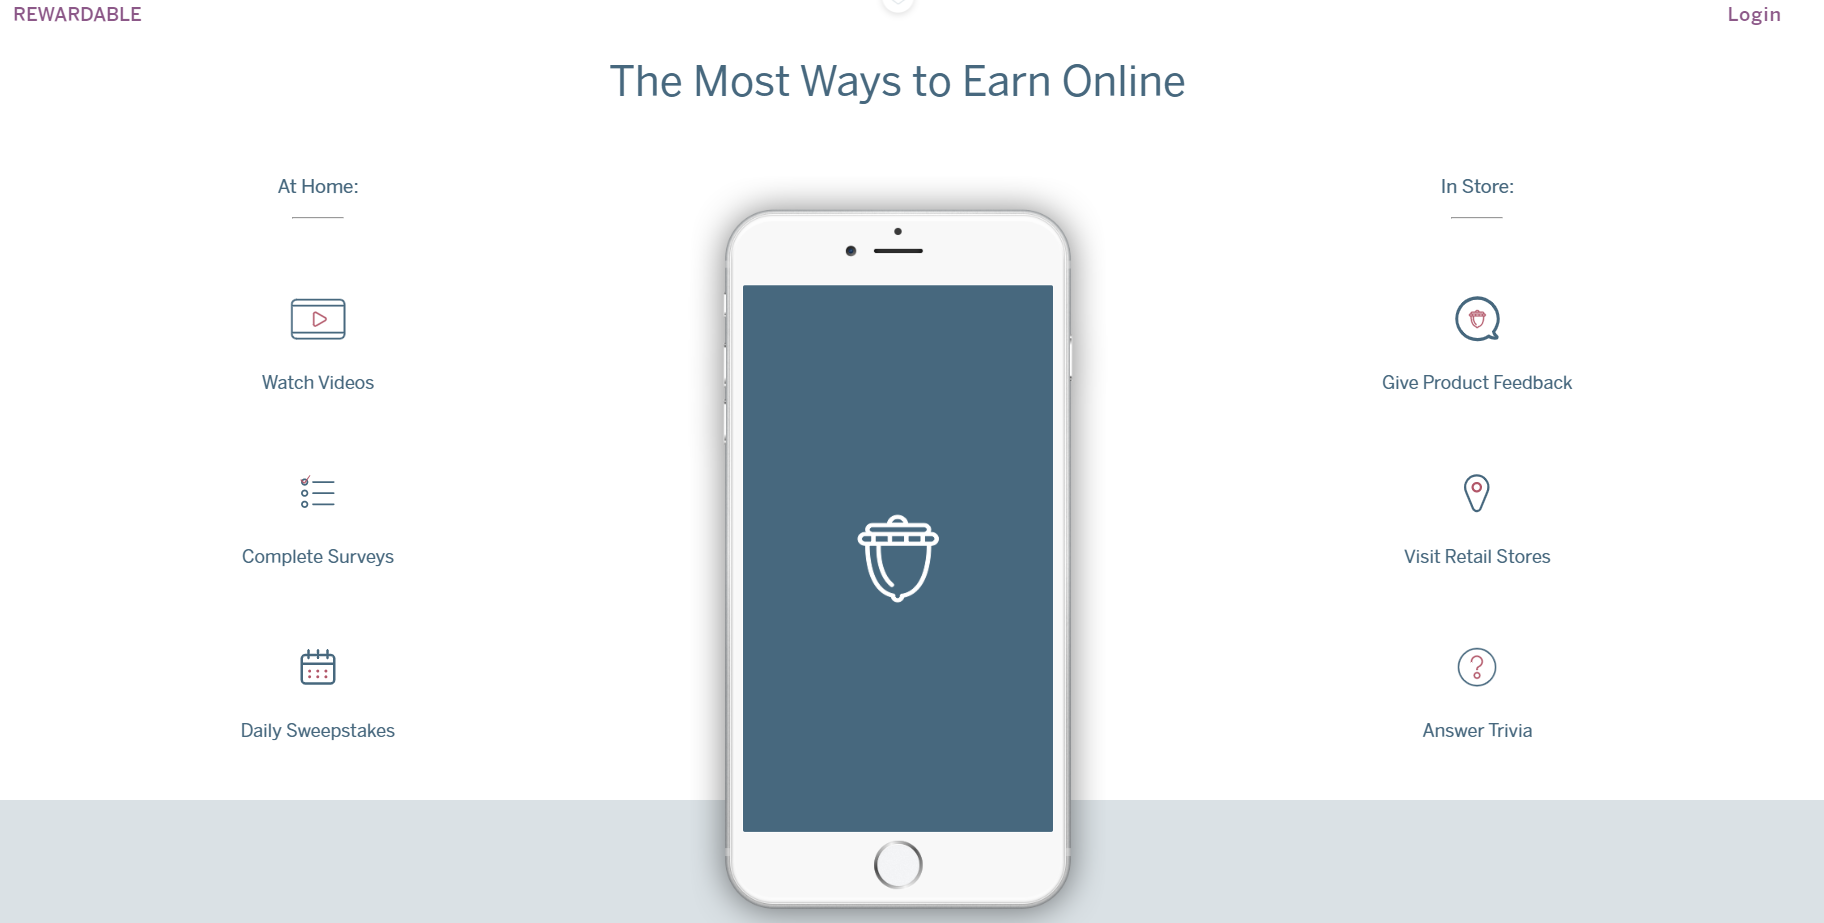 Ways to earn money online with Rewardable